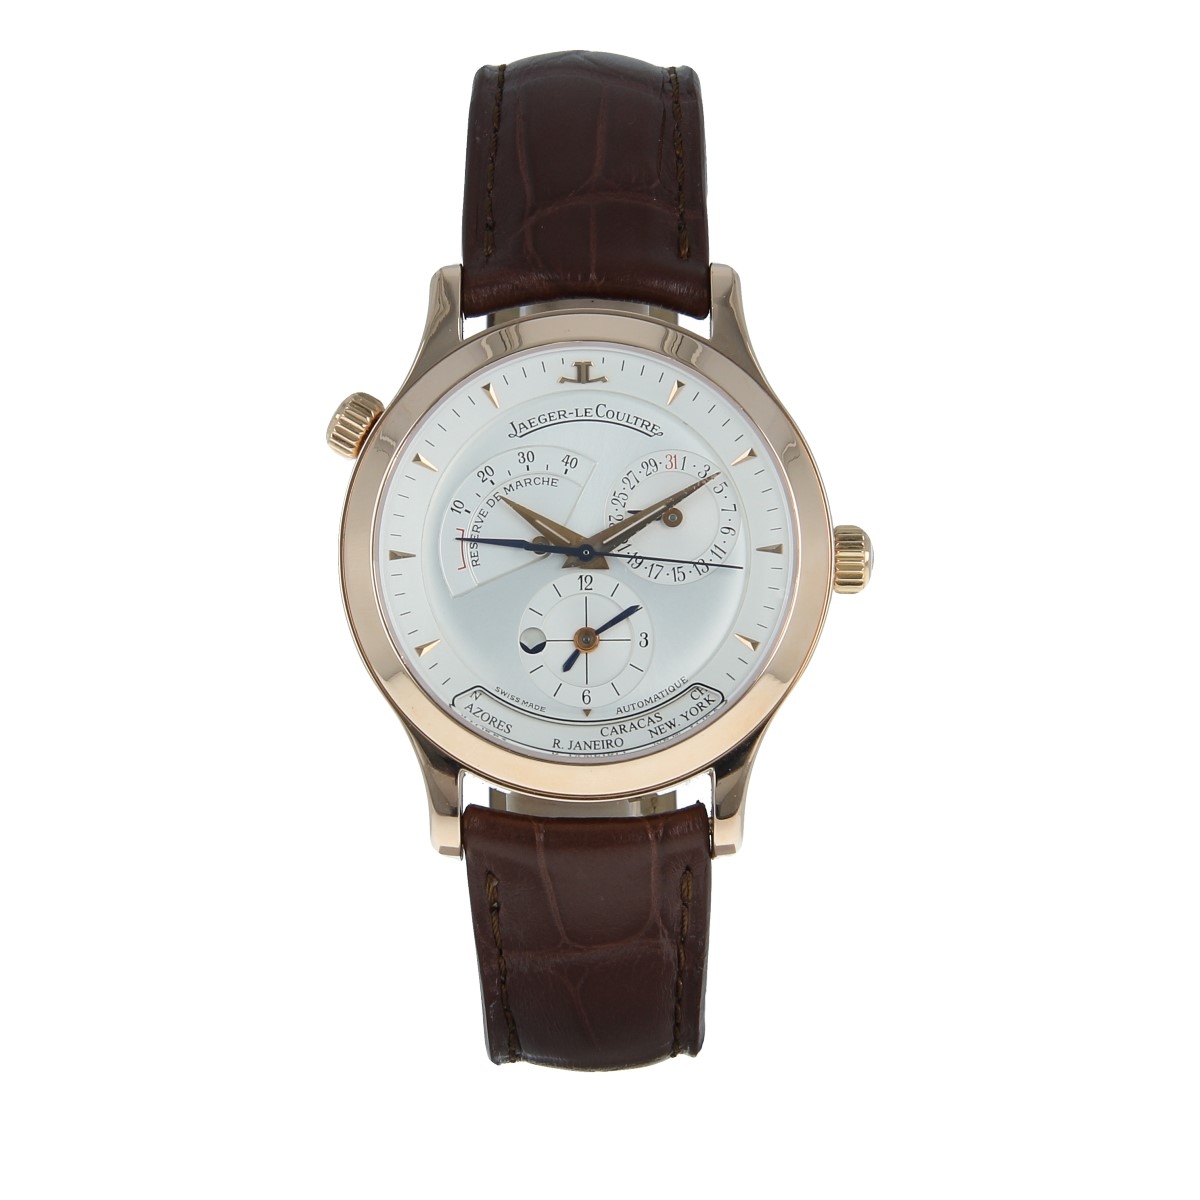 Jaeger-LeCoultre Master Geographic Rose Gold | Buy pre-owned Jaeger-LeCoultre watch